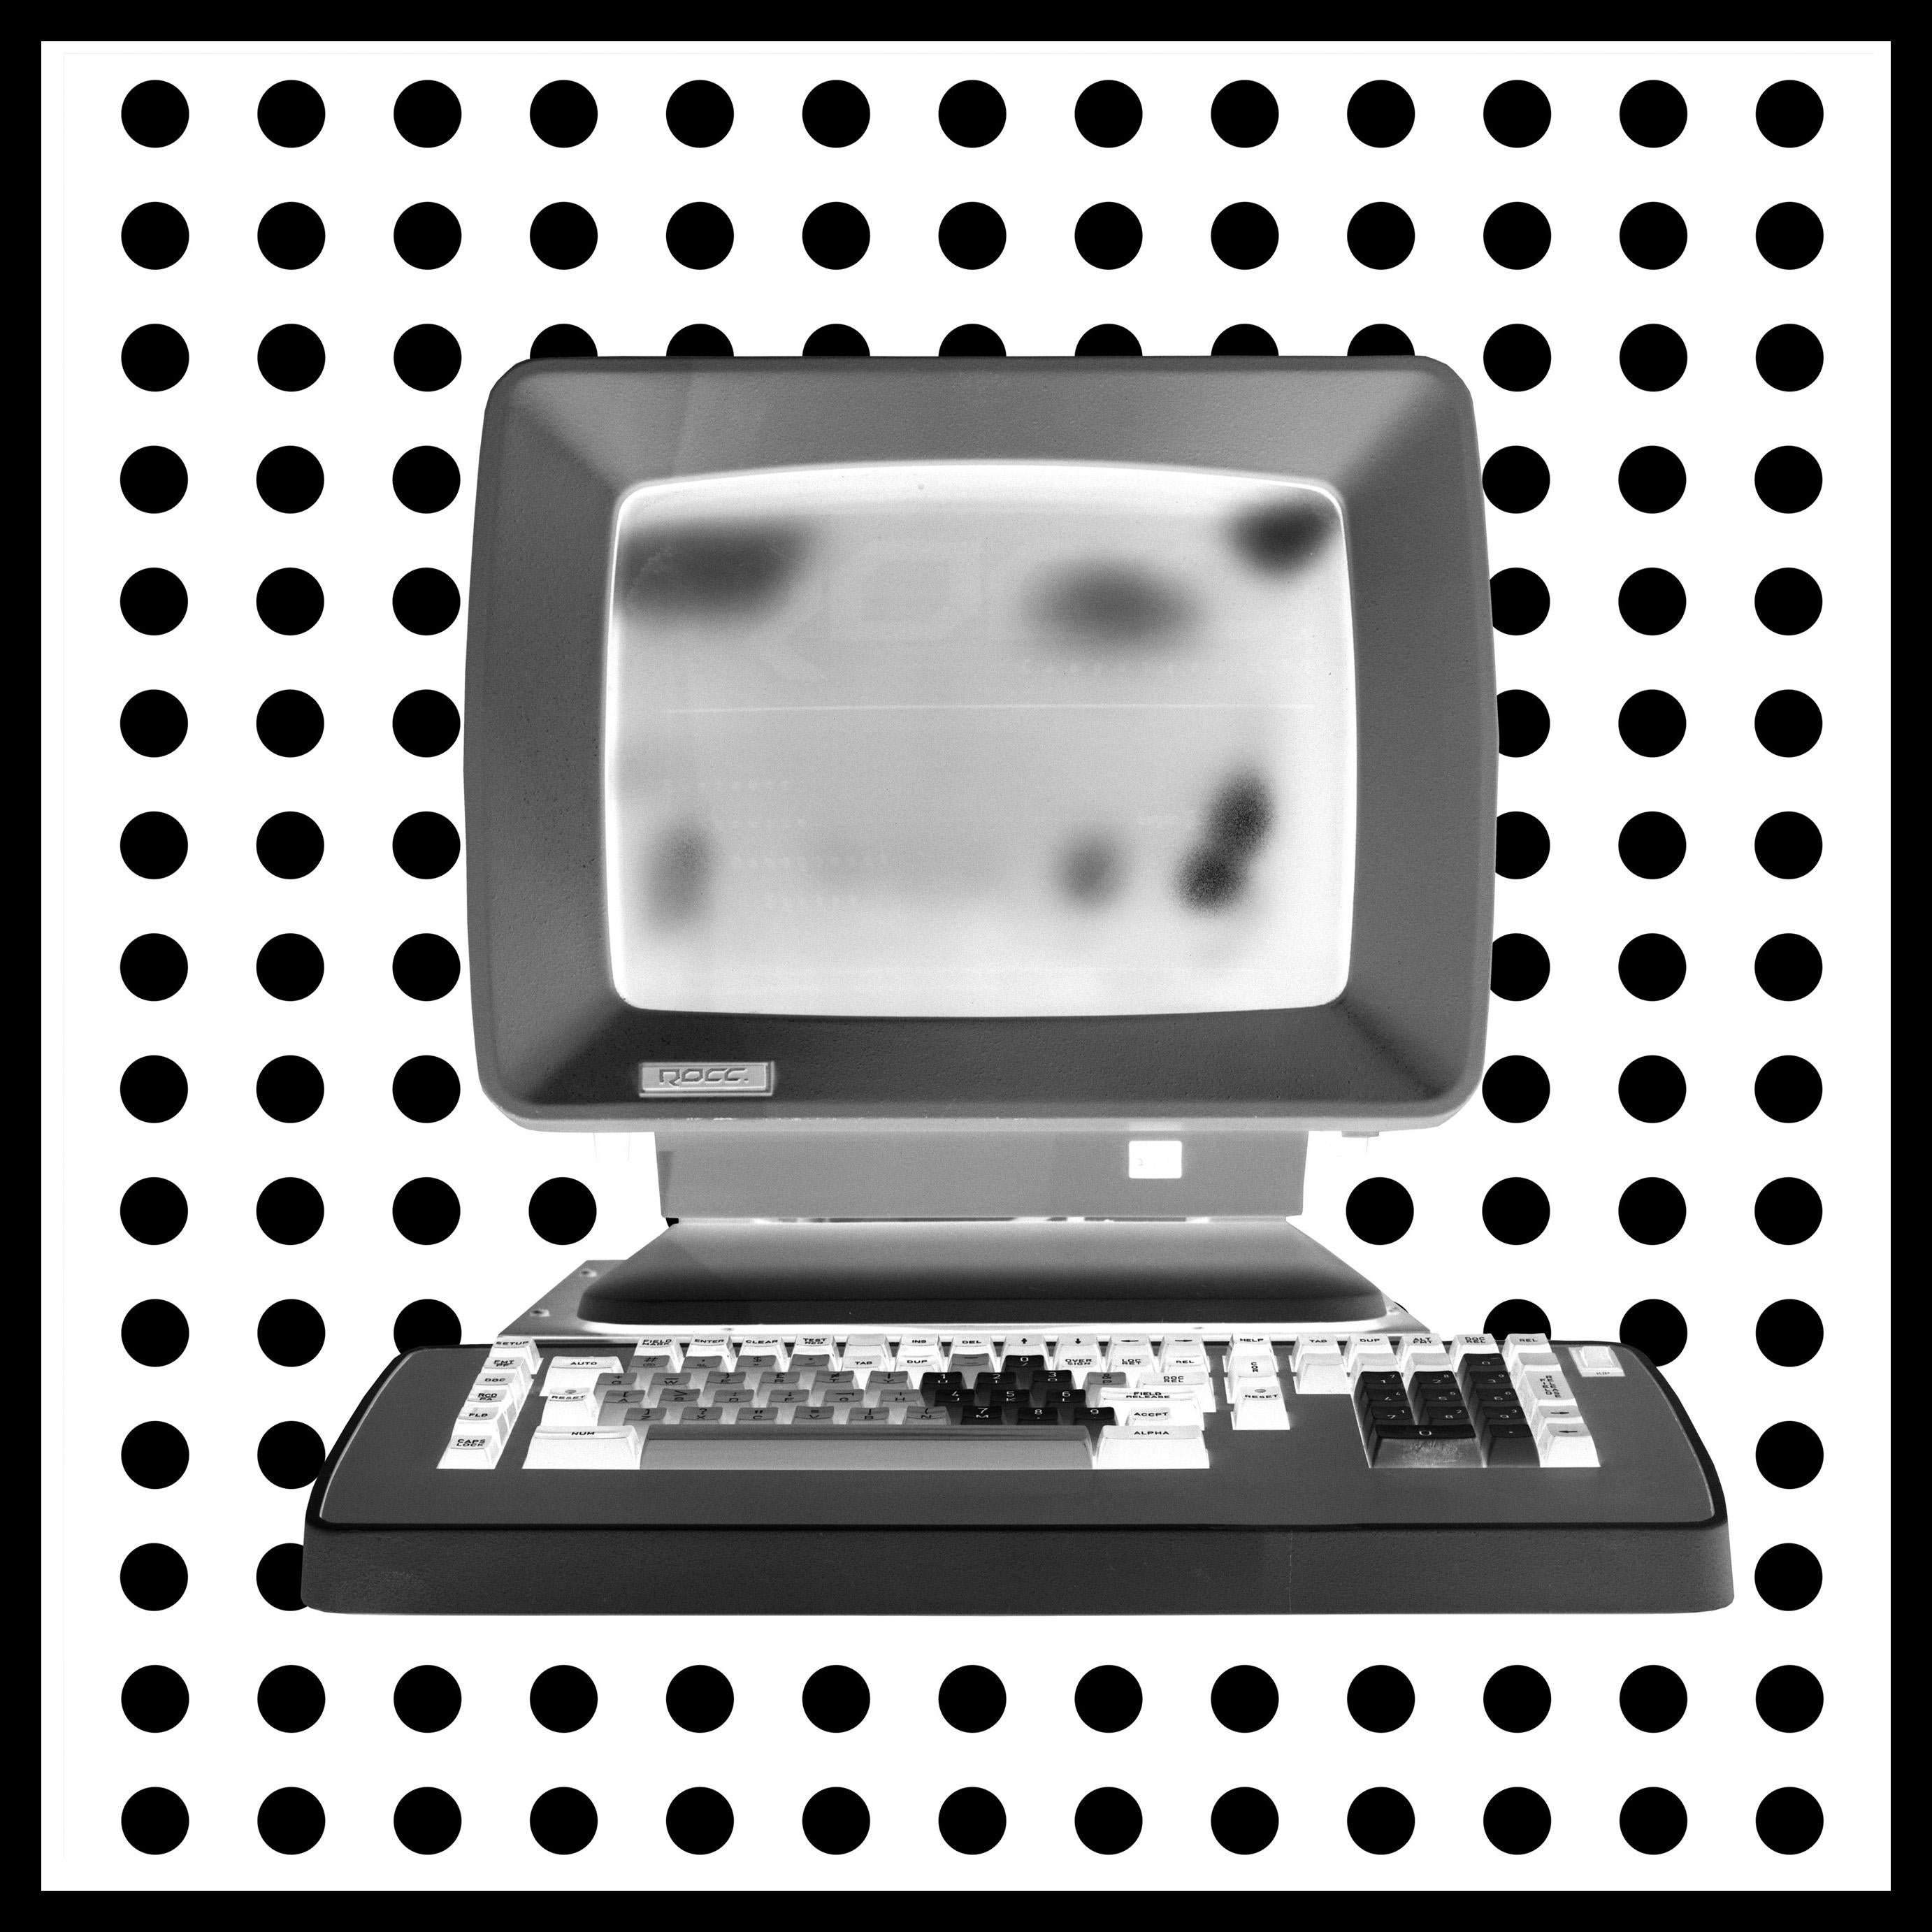 Alpha - Personal Computer Series - Black and White Graphic Photography